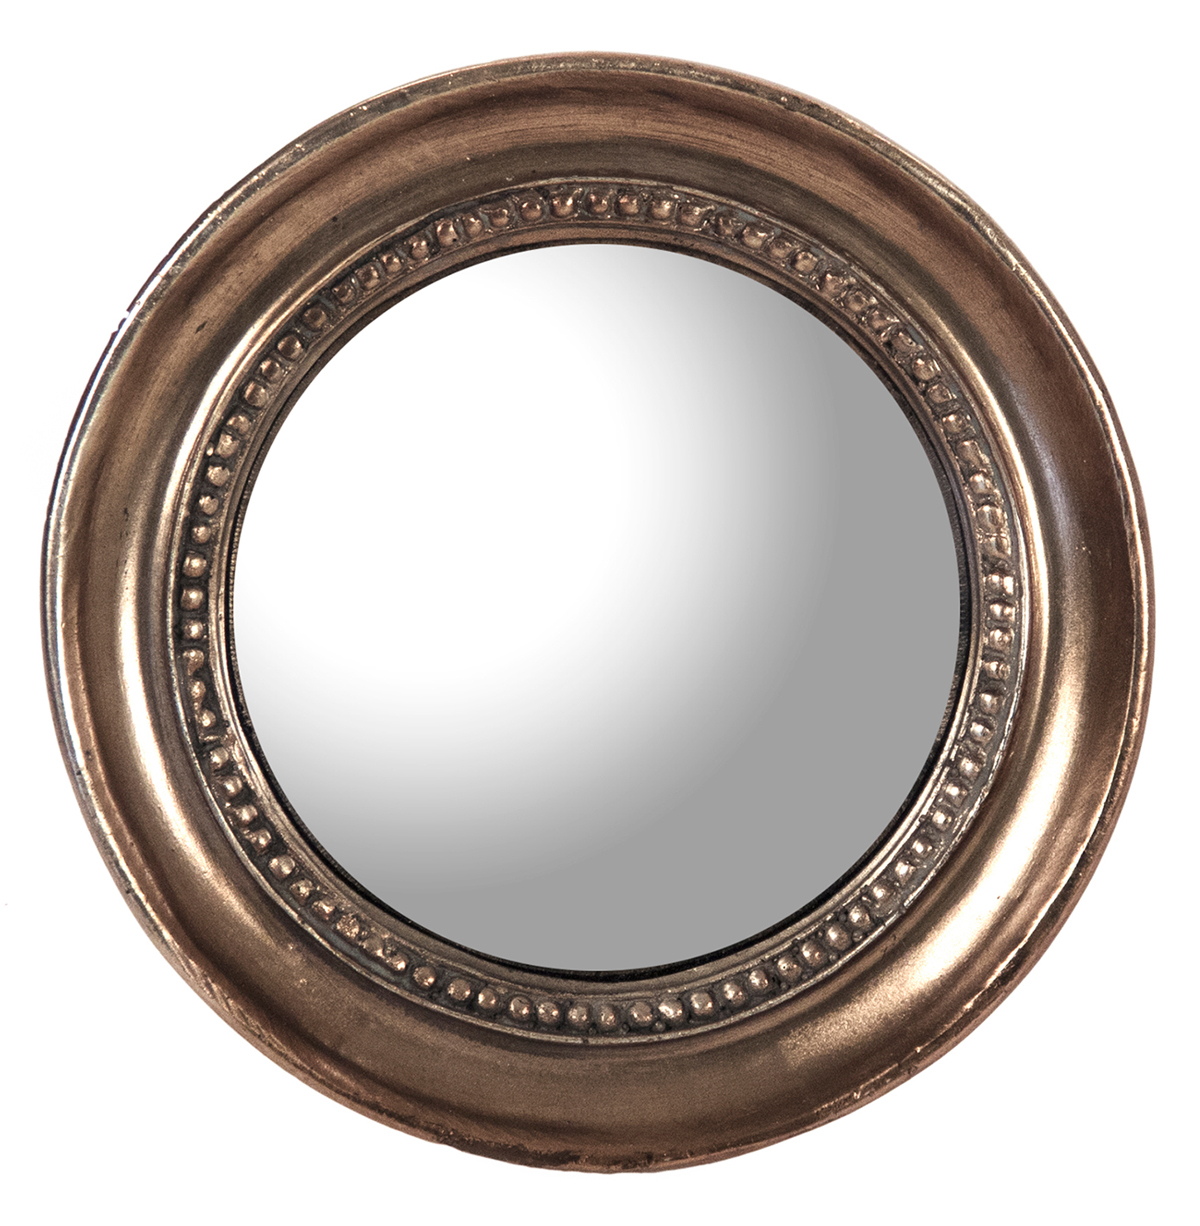 Julian Antique Bronze Distressed Small Round Convex Mirror 7 25d